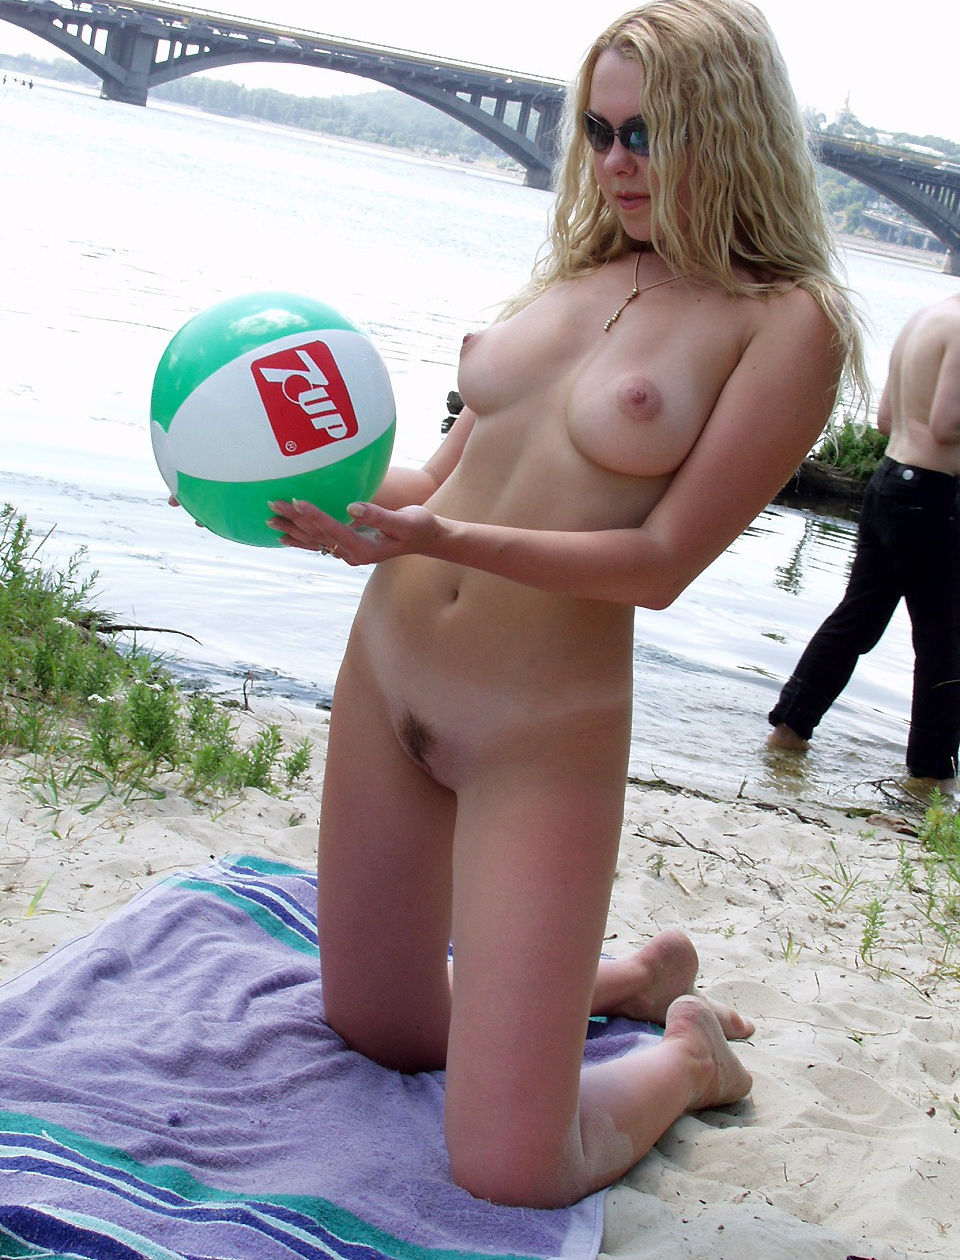 Blonde With Big Beautiful Boobs Plays With Ball Naked At -8298